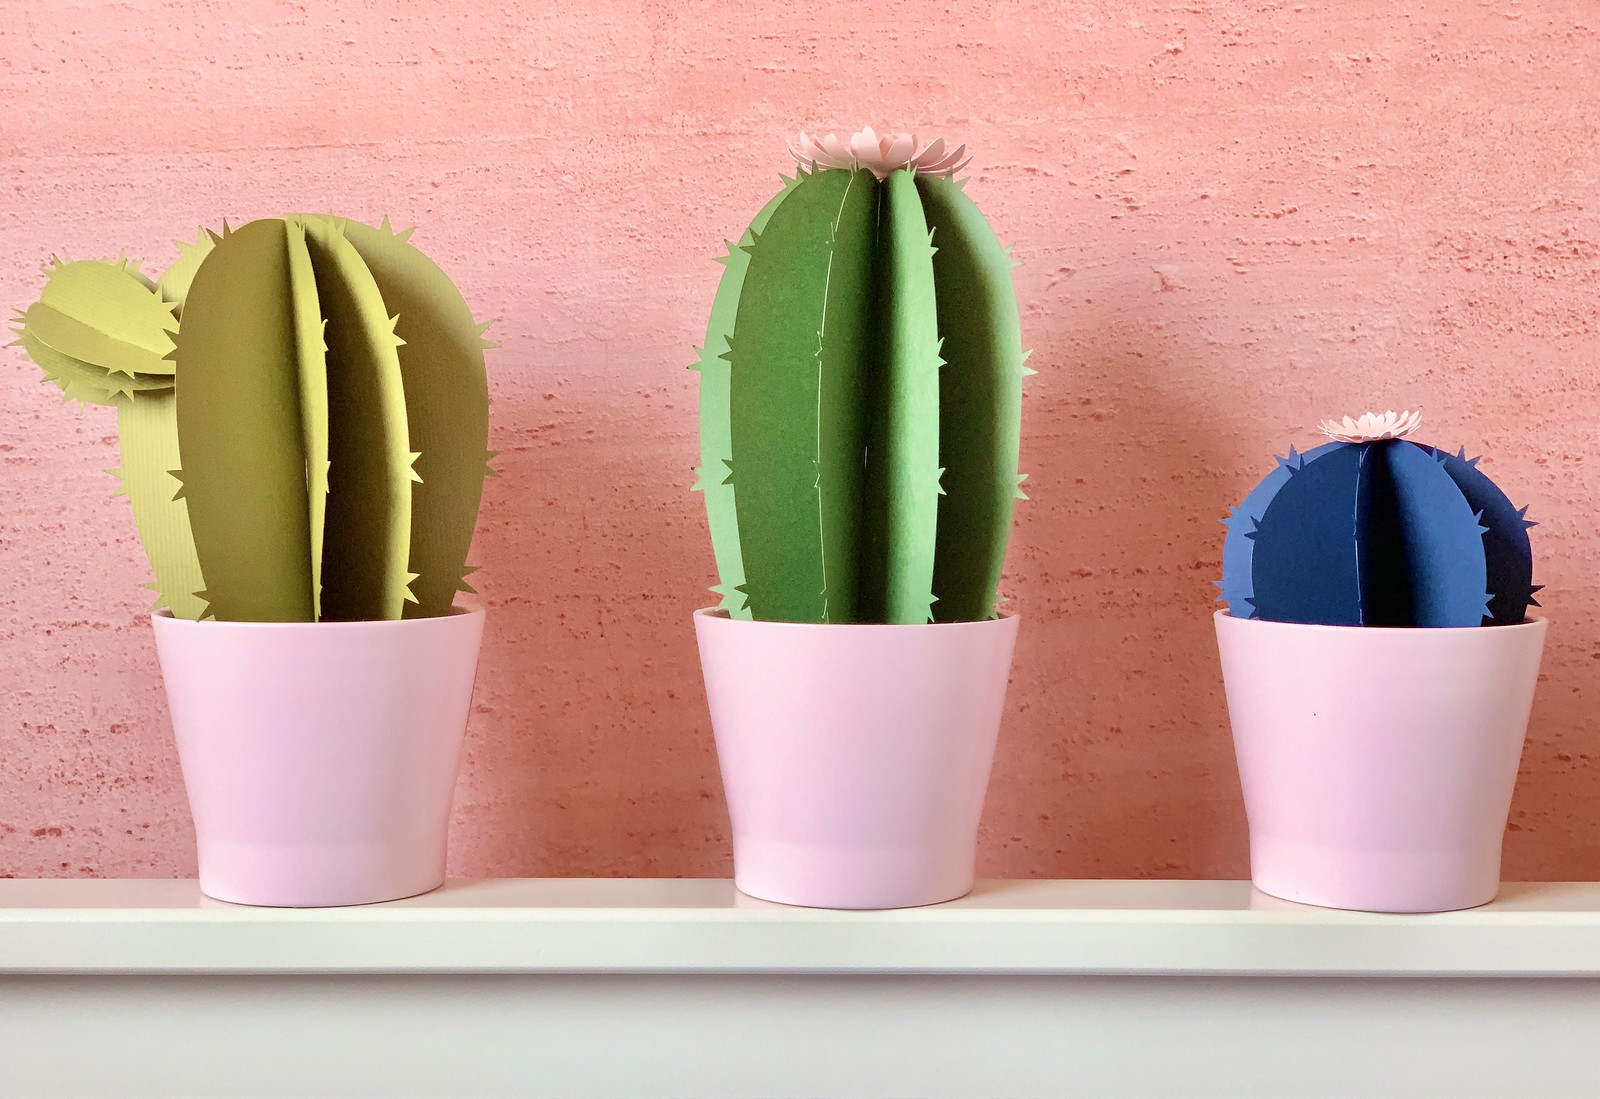 Close up of three paper cactuses. One pale green, one dark green, one dark blue, against a pink wall.